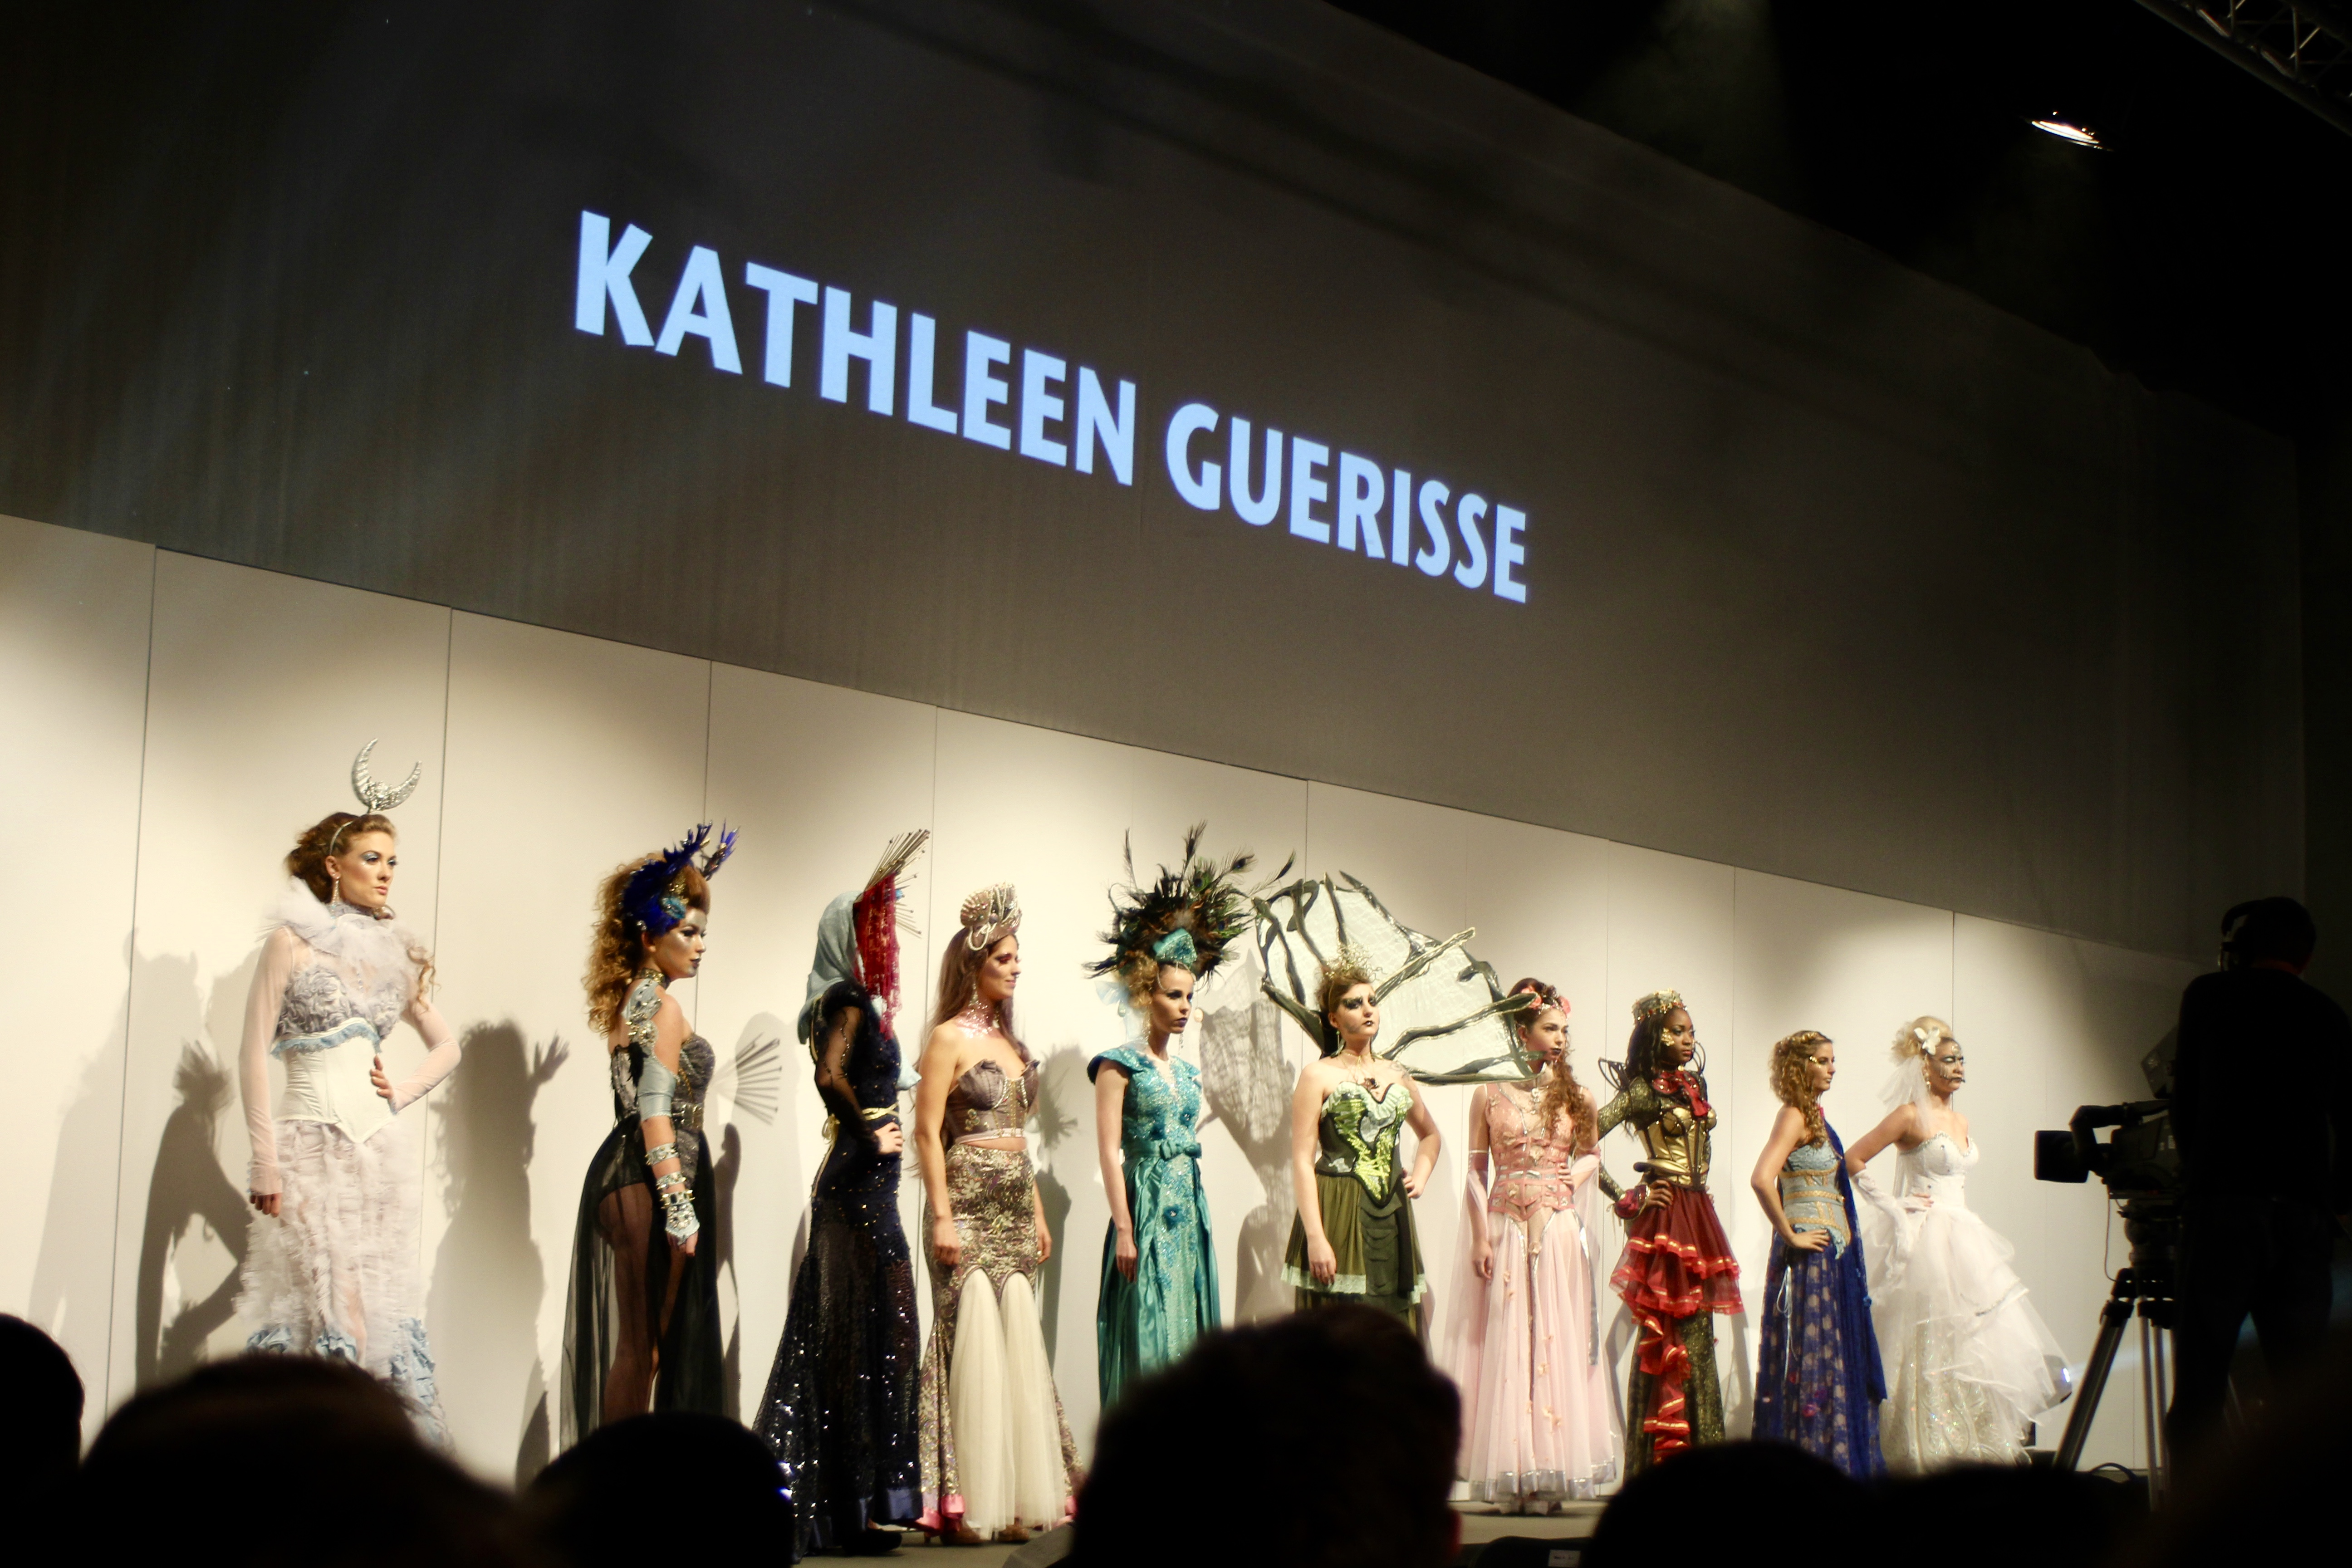 lux fashion week - Kathleen Guerisse